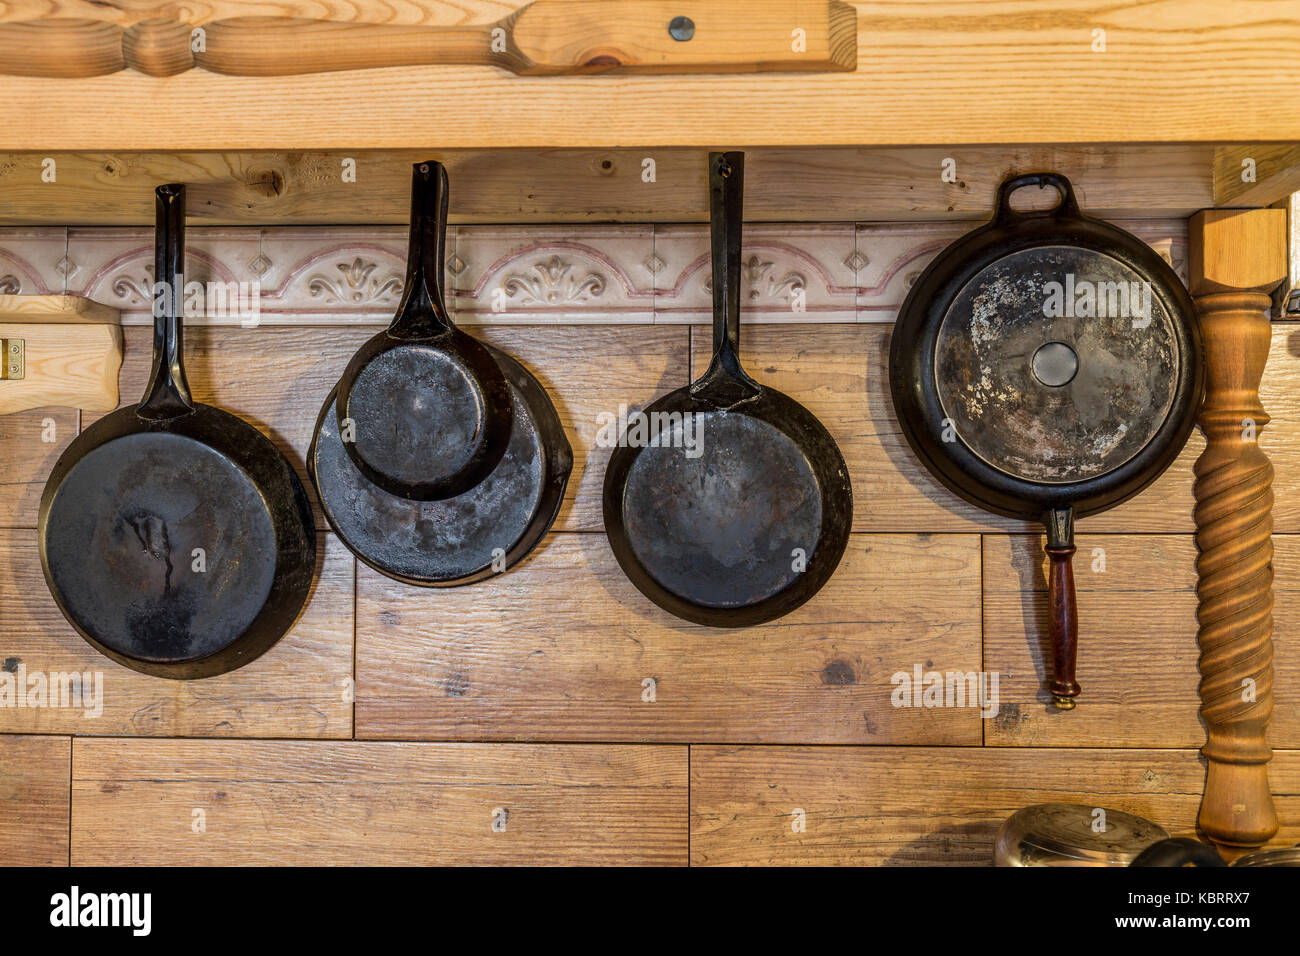 Front view of metal pans - Stock Image